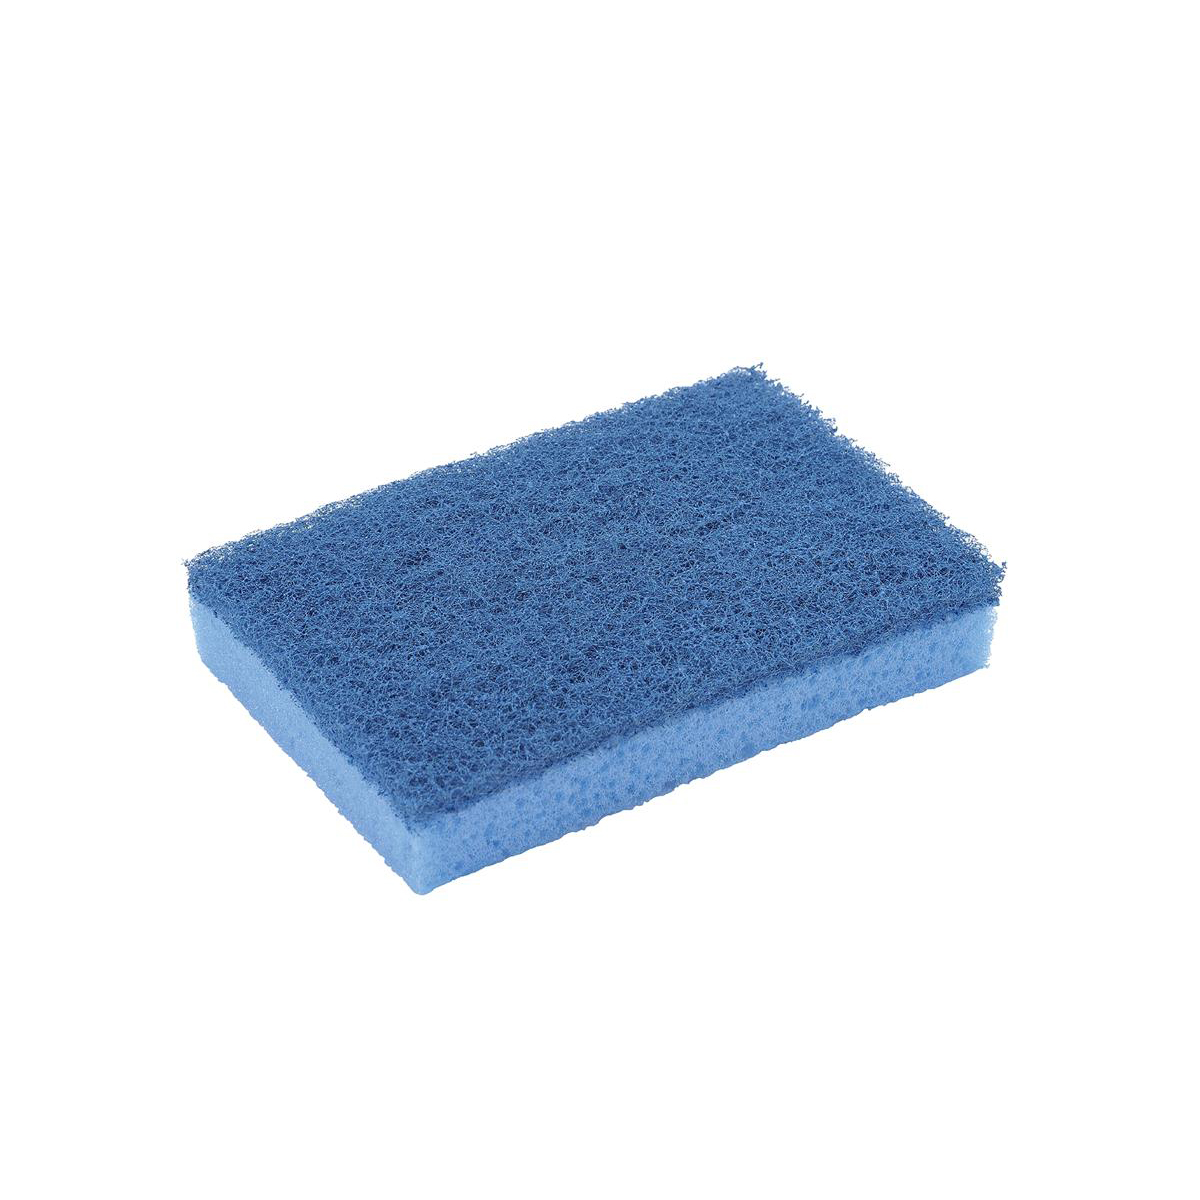 Sponge Scourer High Quality Non Scratch Blue Pack 10